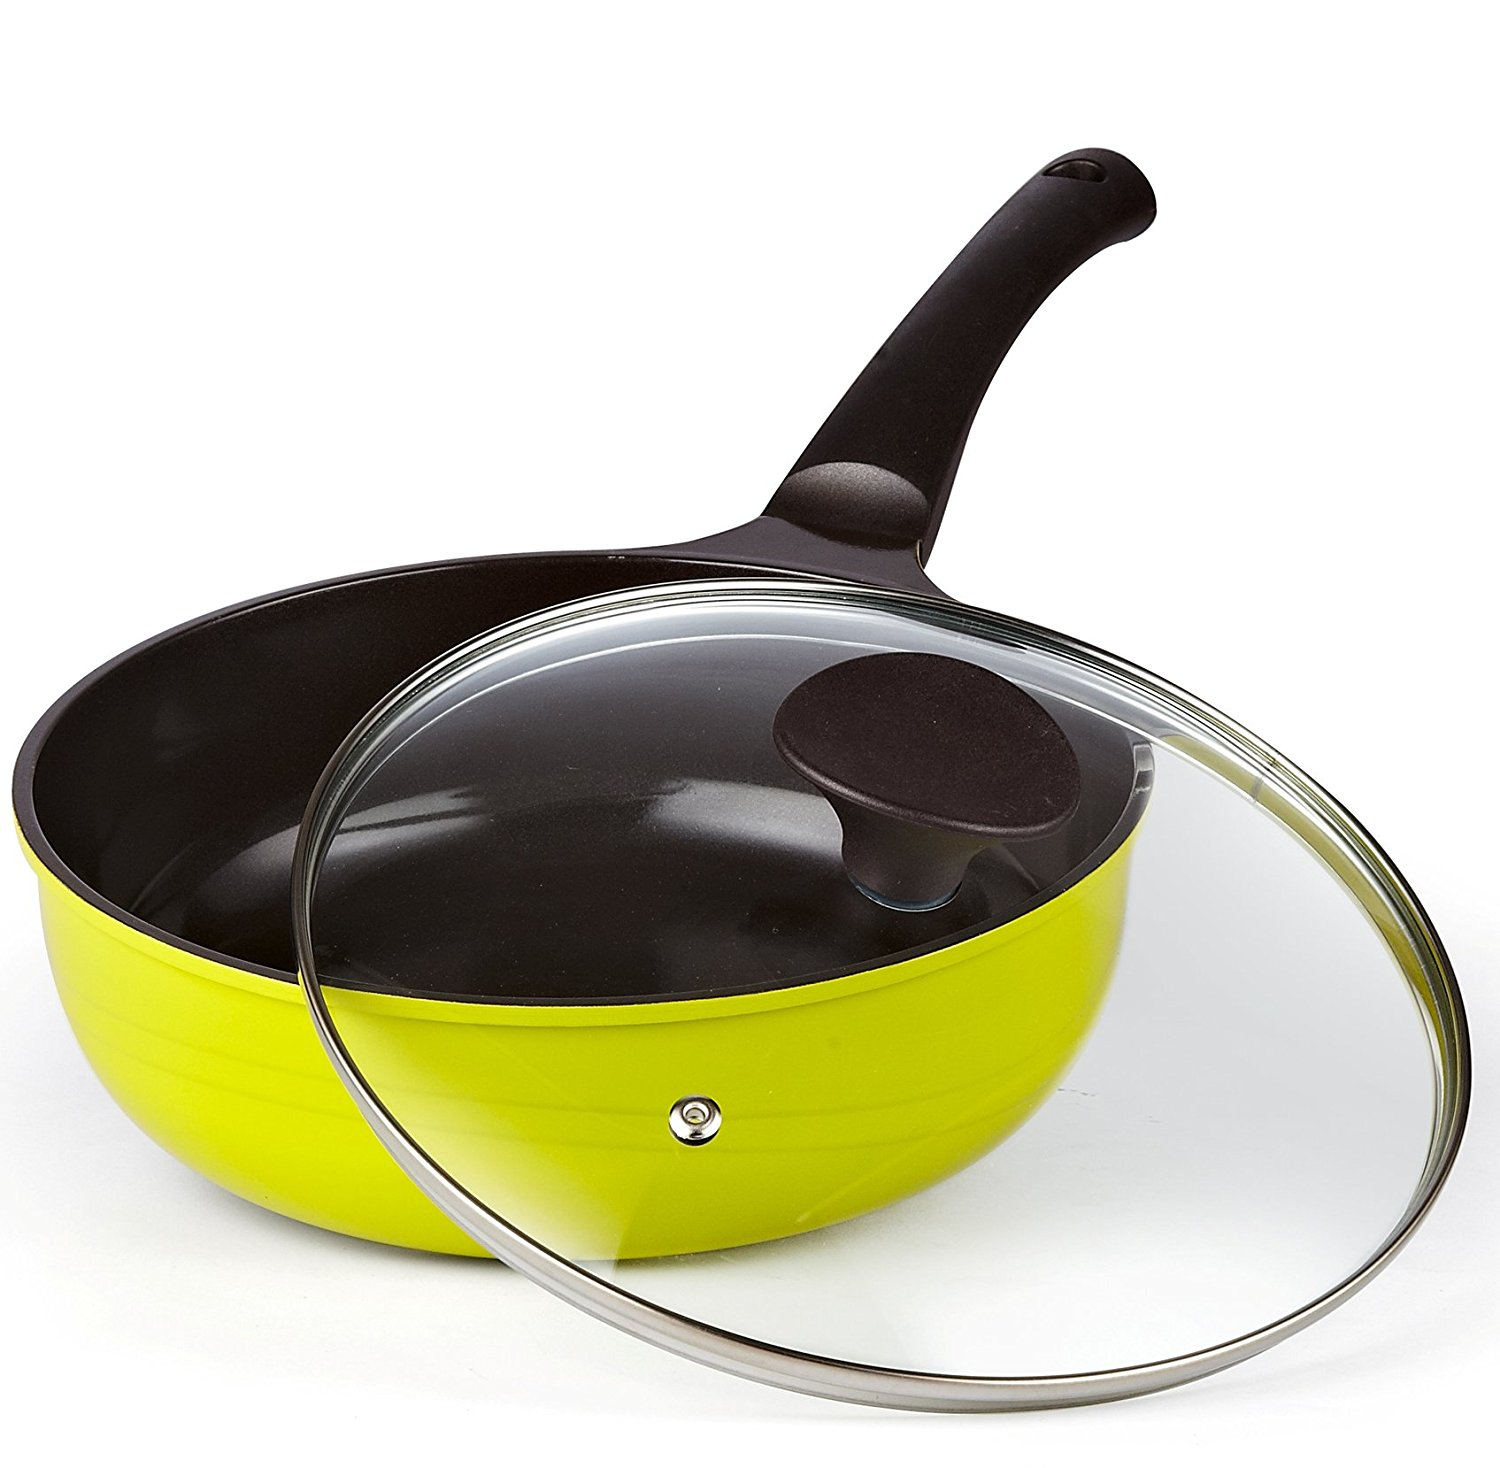 Cook N Home 3 Qt/9.5 in. Nonstick Ceramic Coating Saute Stir Fry Pan with Lid, Green